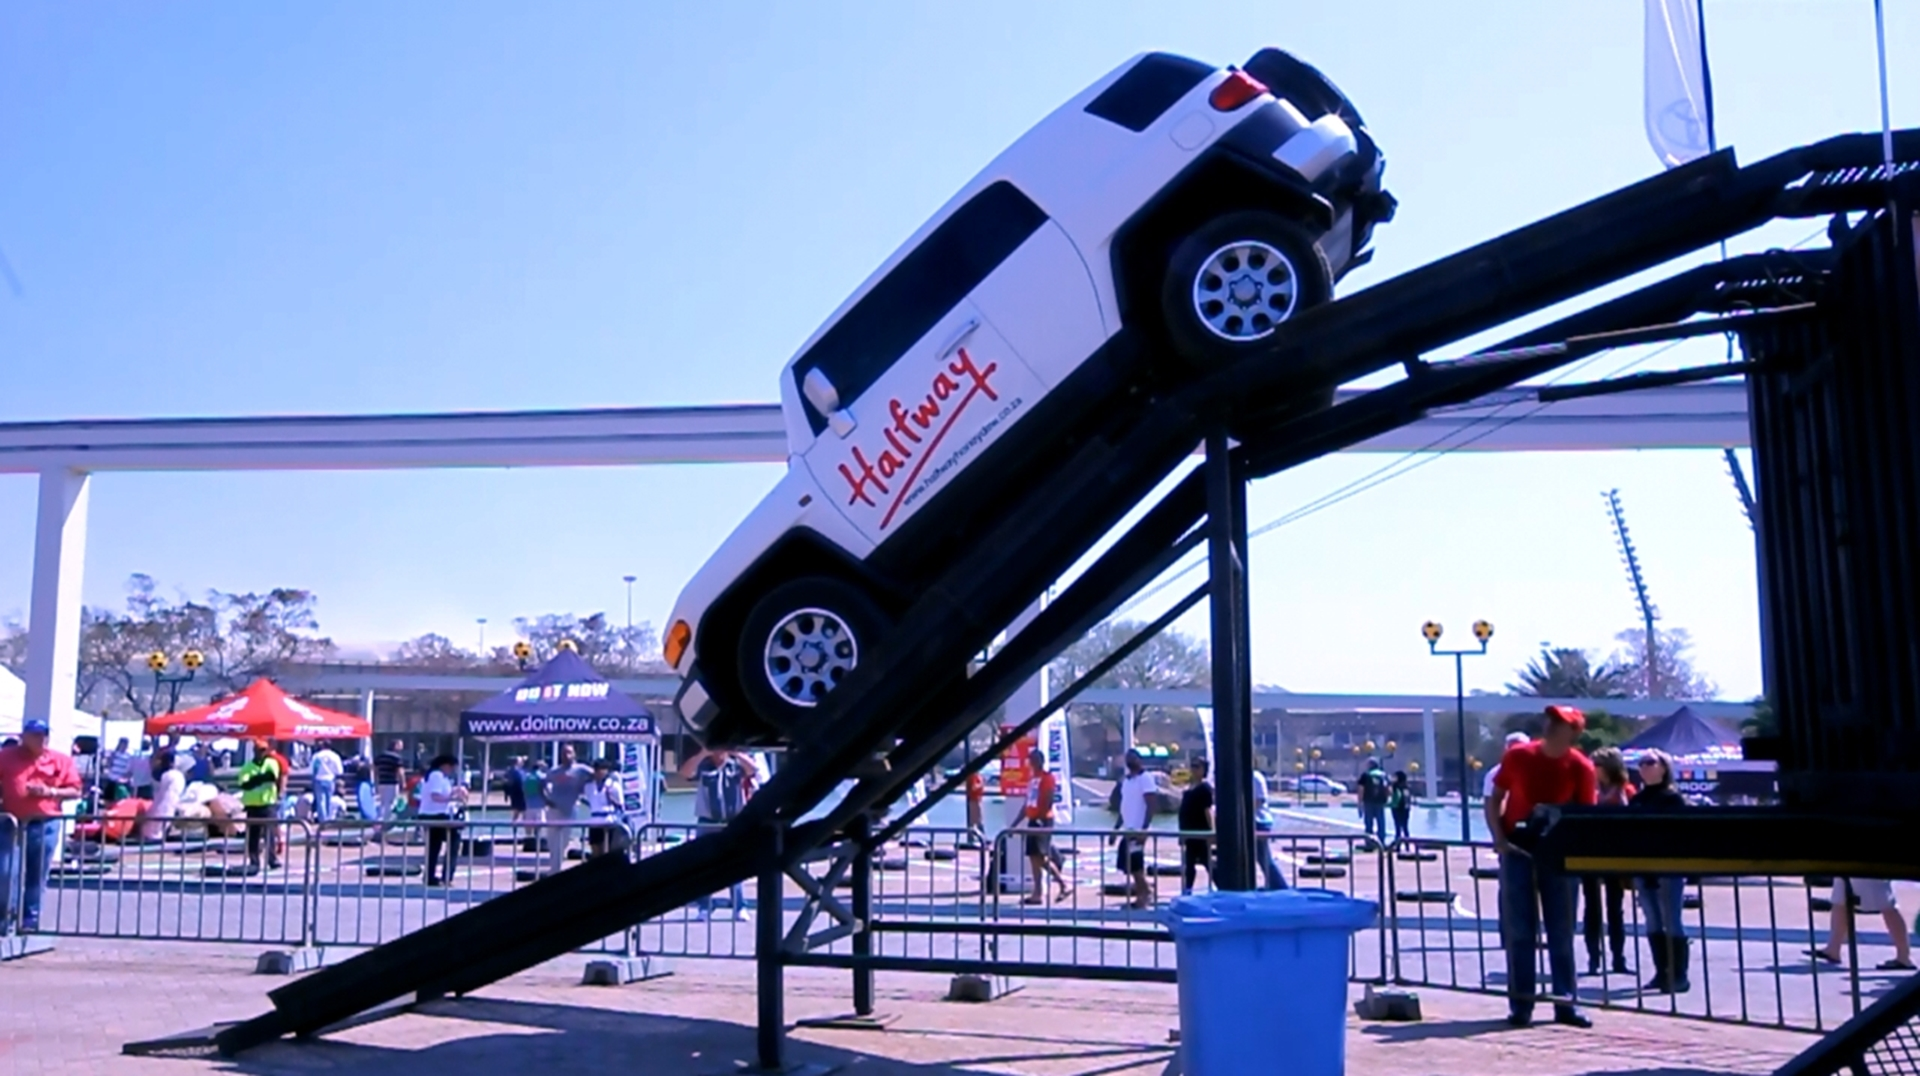 Halfway Toyota 4x4 Off Road Fj Cruiser Video Amid Motorcycle Show 2012